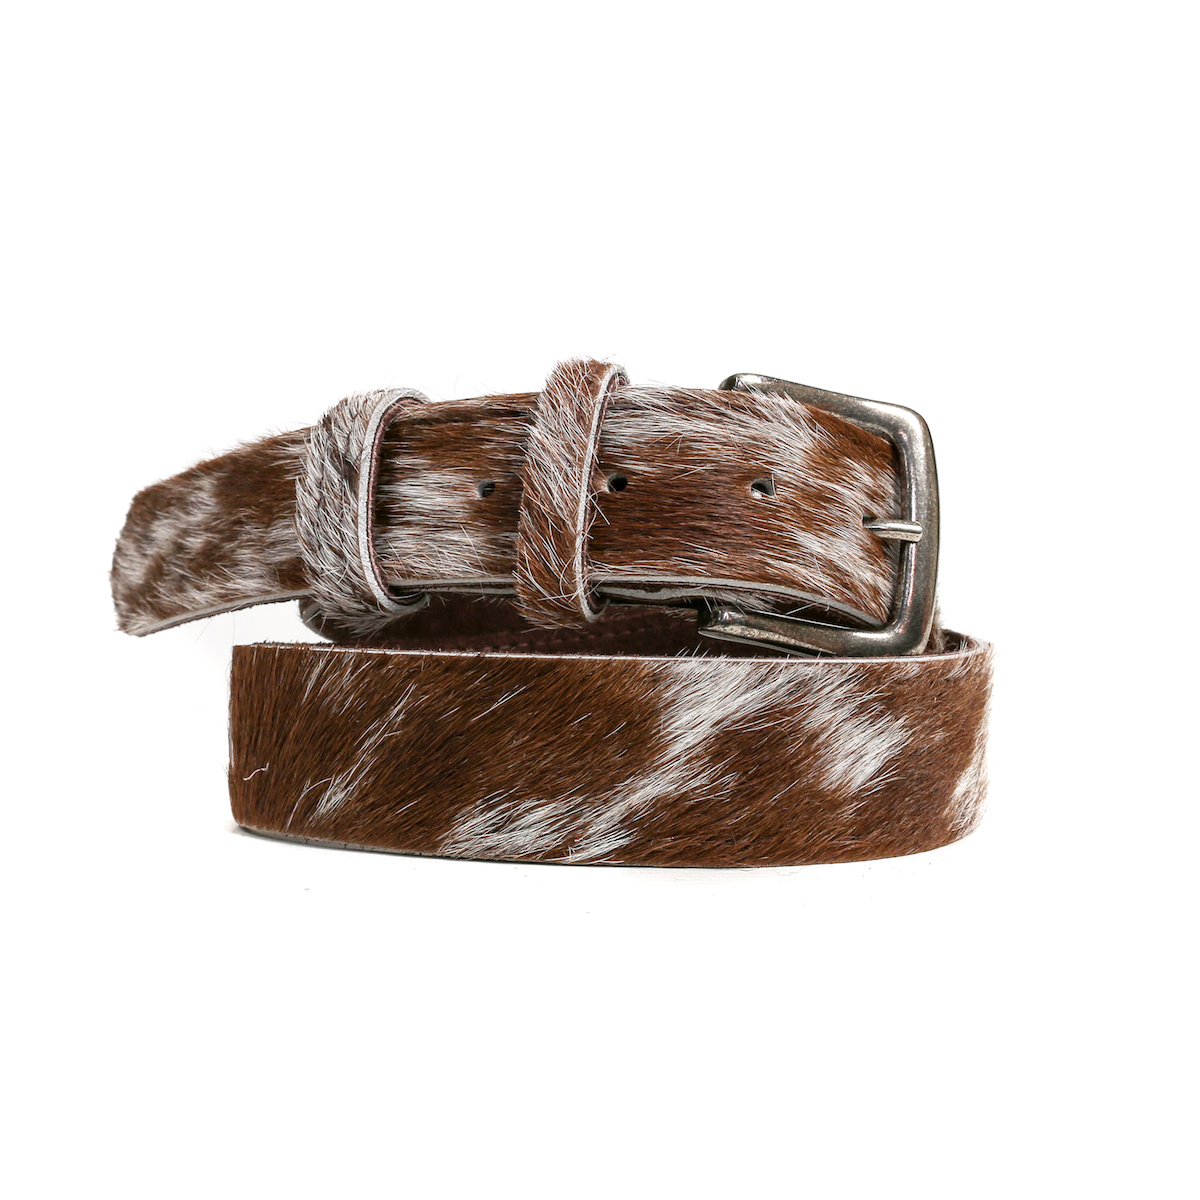 cowhide belts, tan and white, artisan made, handmade, cowhide, slow fashion, sustainable fashion